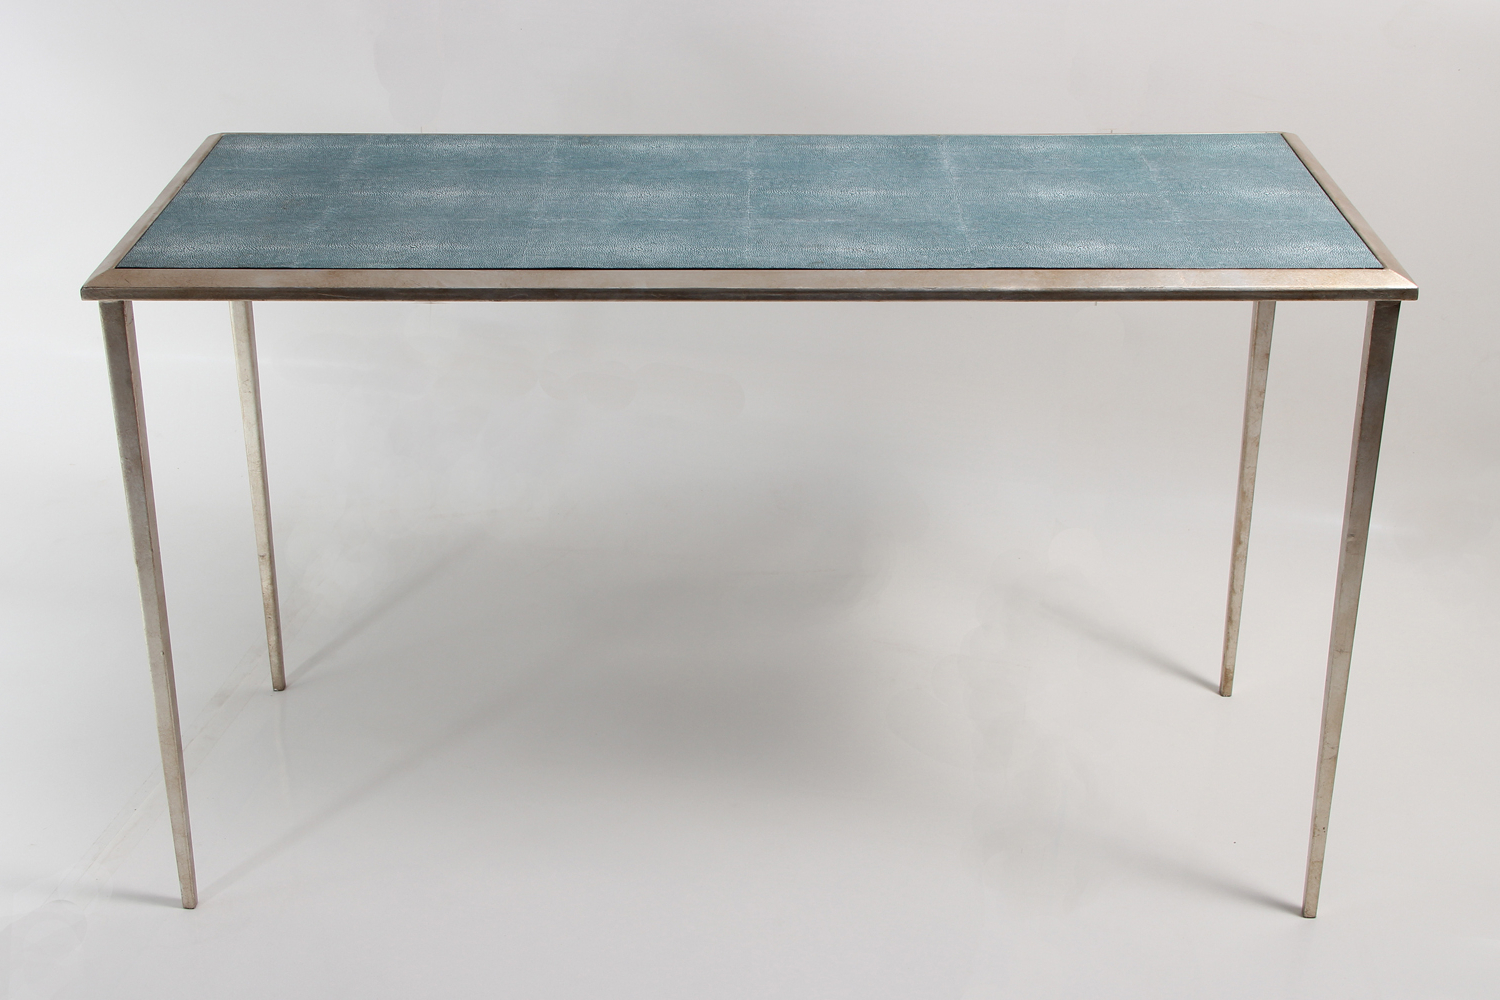 Most Recent Shagreen Console Table Wood : Console Table – Shagreen Console Table Intended For Grey Shagreen Media Console Tables (View 10 of 20)